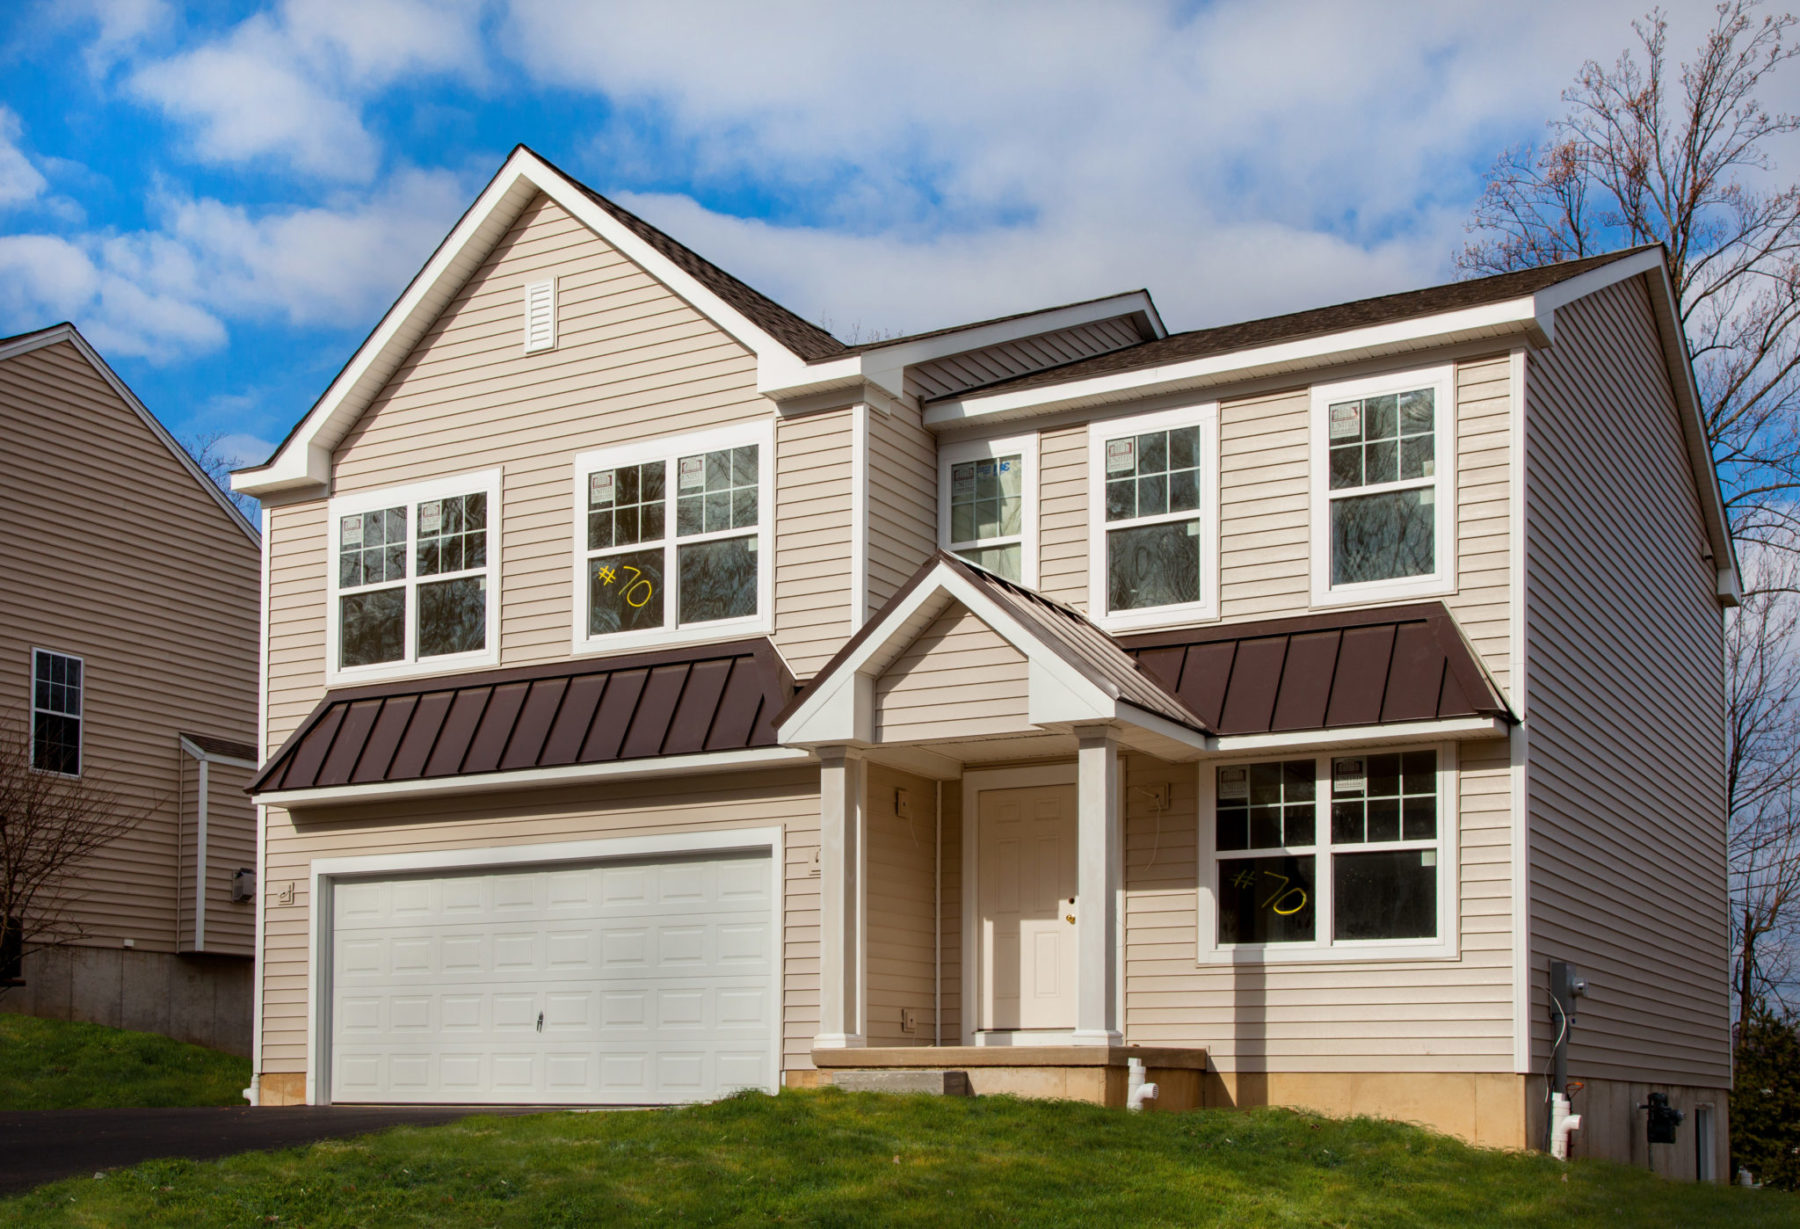 3421 Alydar Road, The Crossing At BaileyStation, Provident Homes, Downingtown New Homes